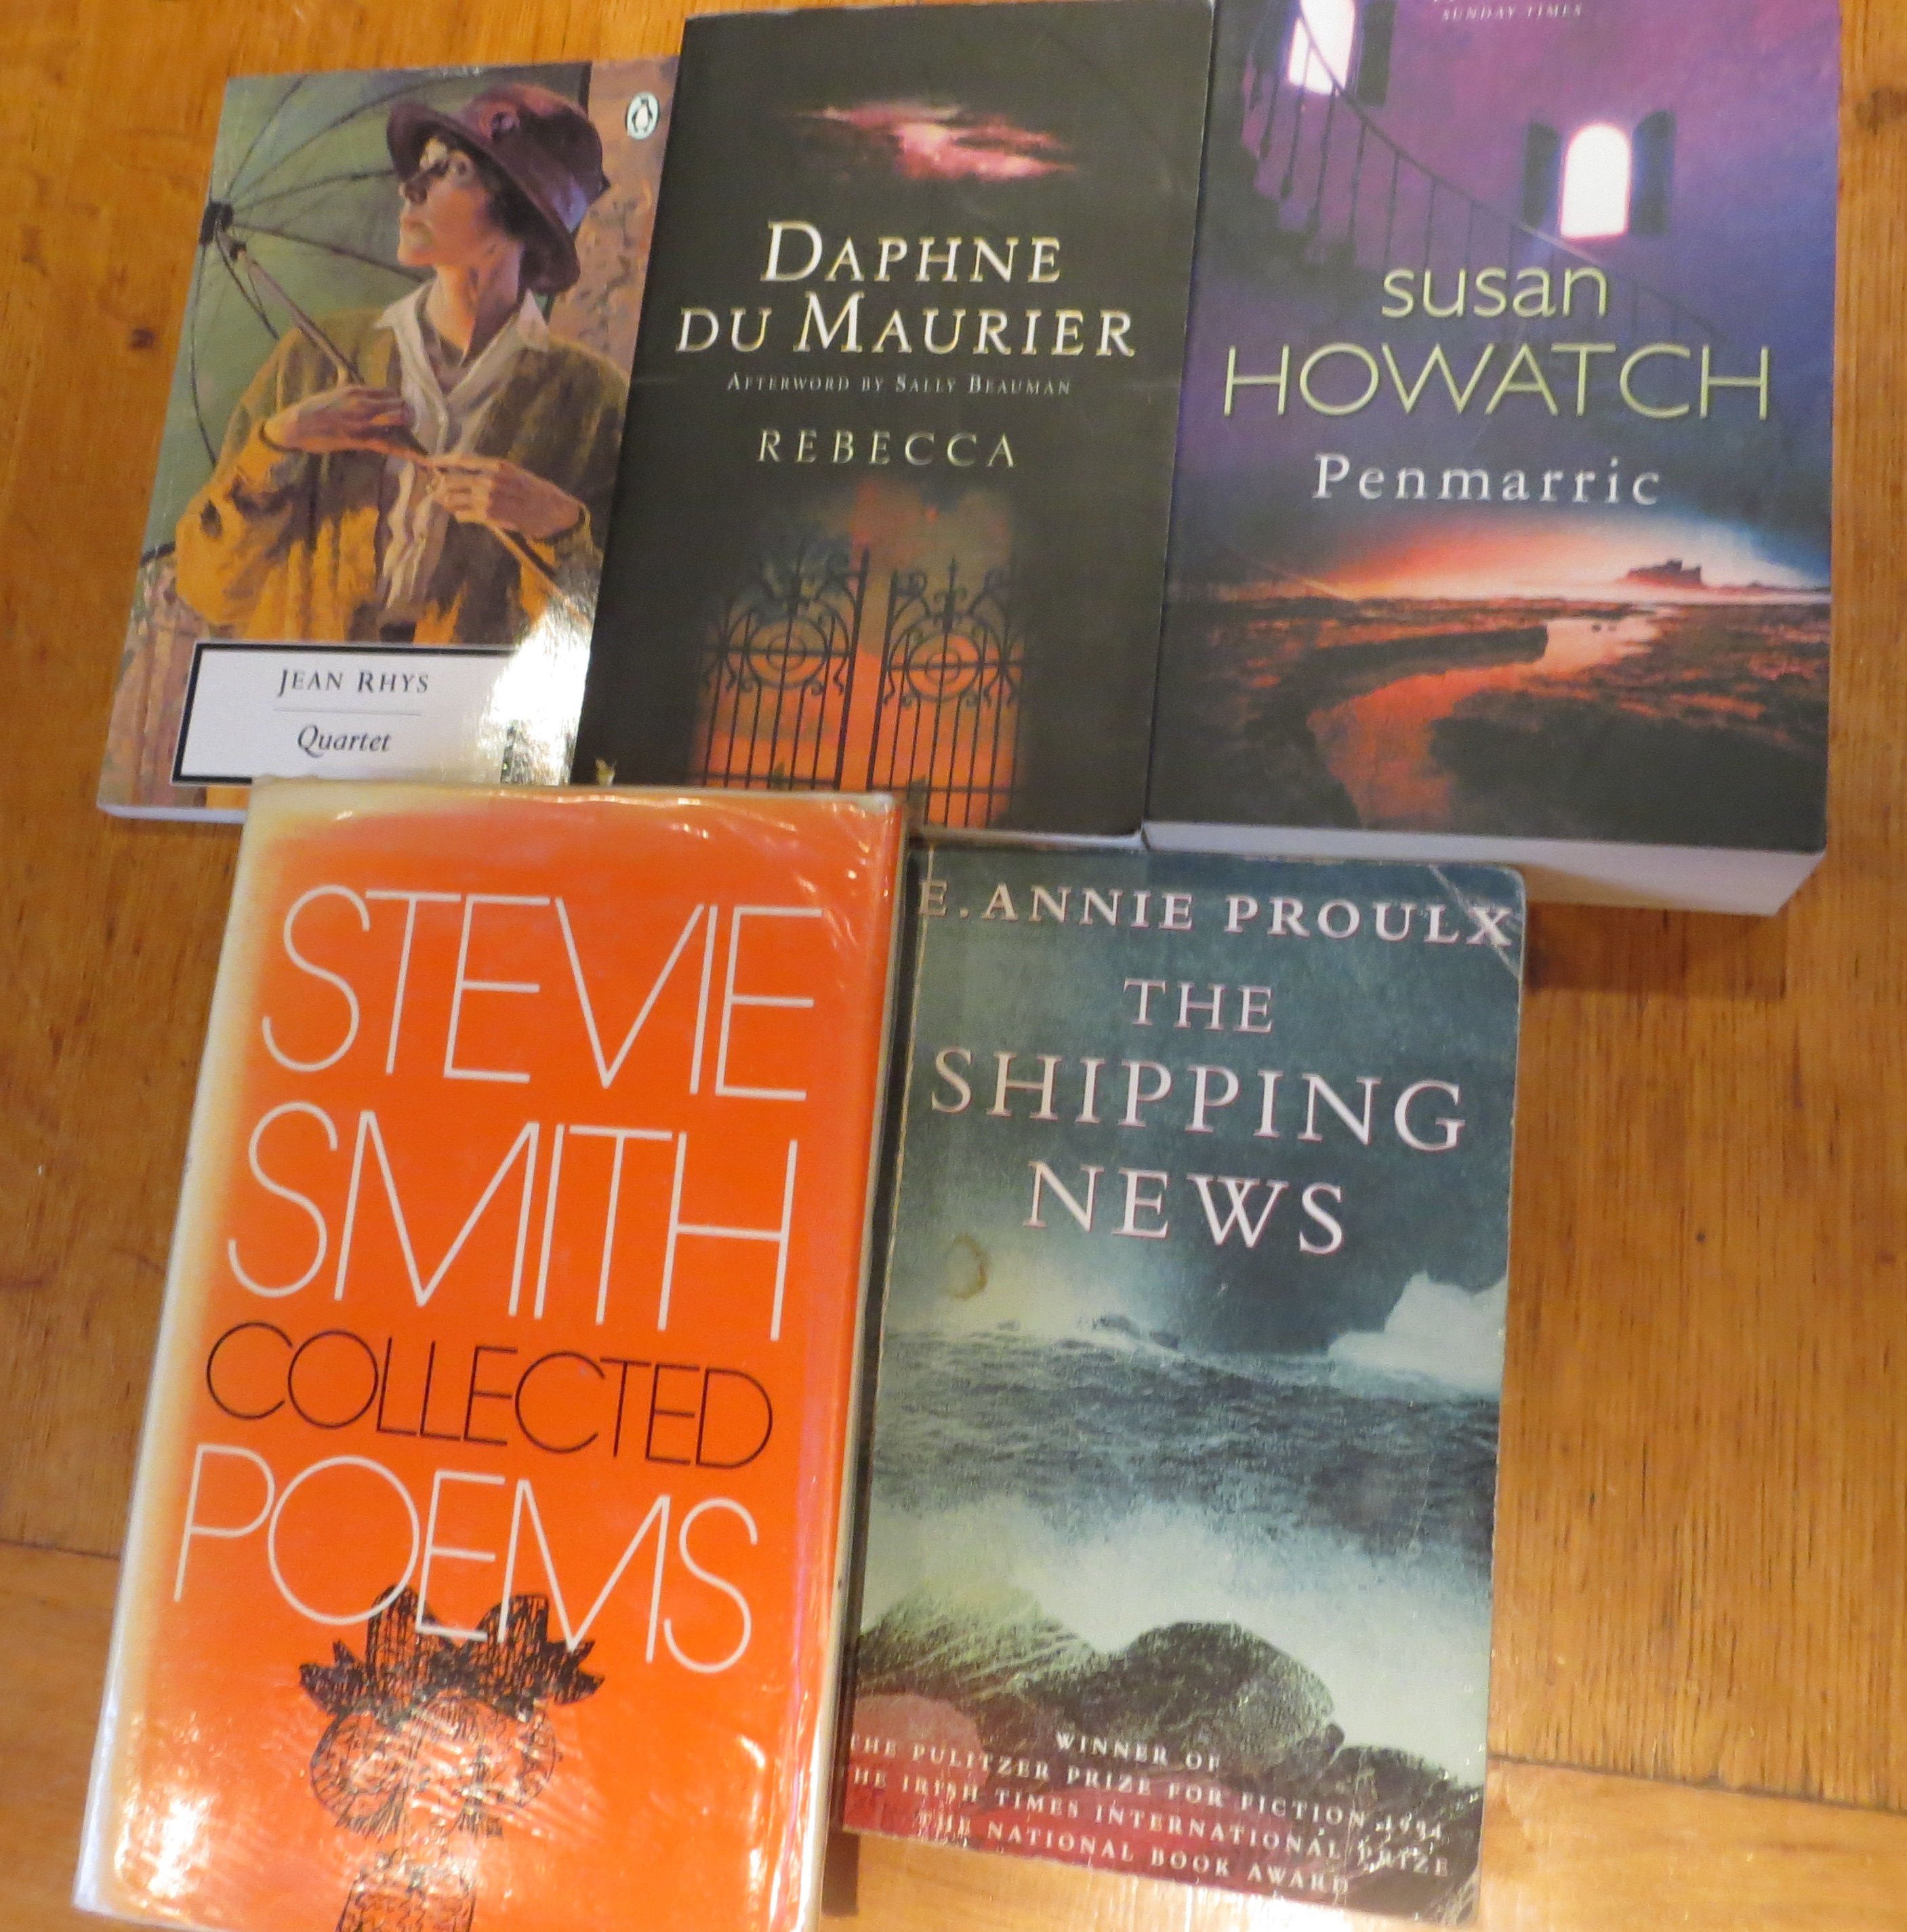 Books by Jean Rhys, Daphne du Maurier, Susan Howatch, Stevie Smith and E. Annie Proulx